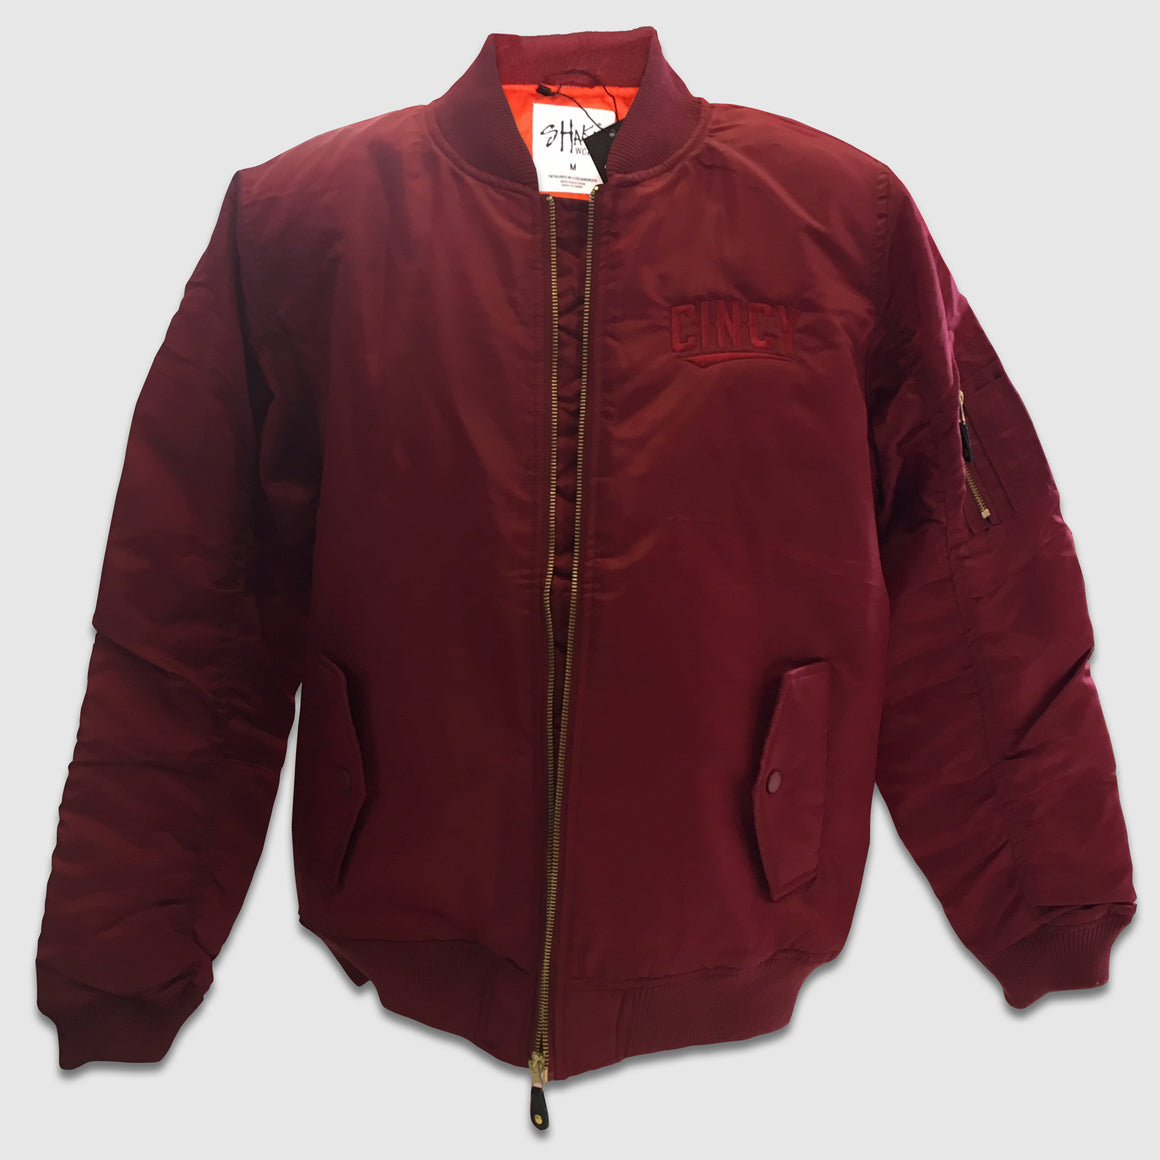 Maroon Cincy Swoop Zip-Up Bomber Jacket - Cincy Shirts